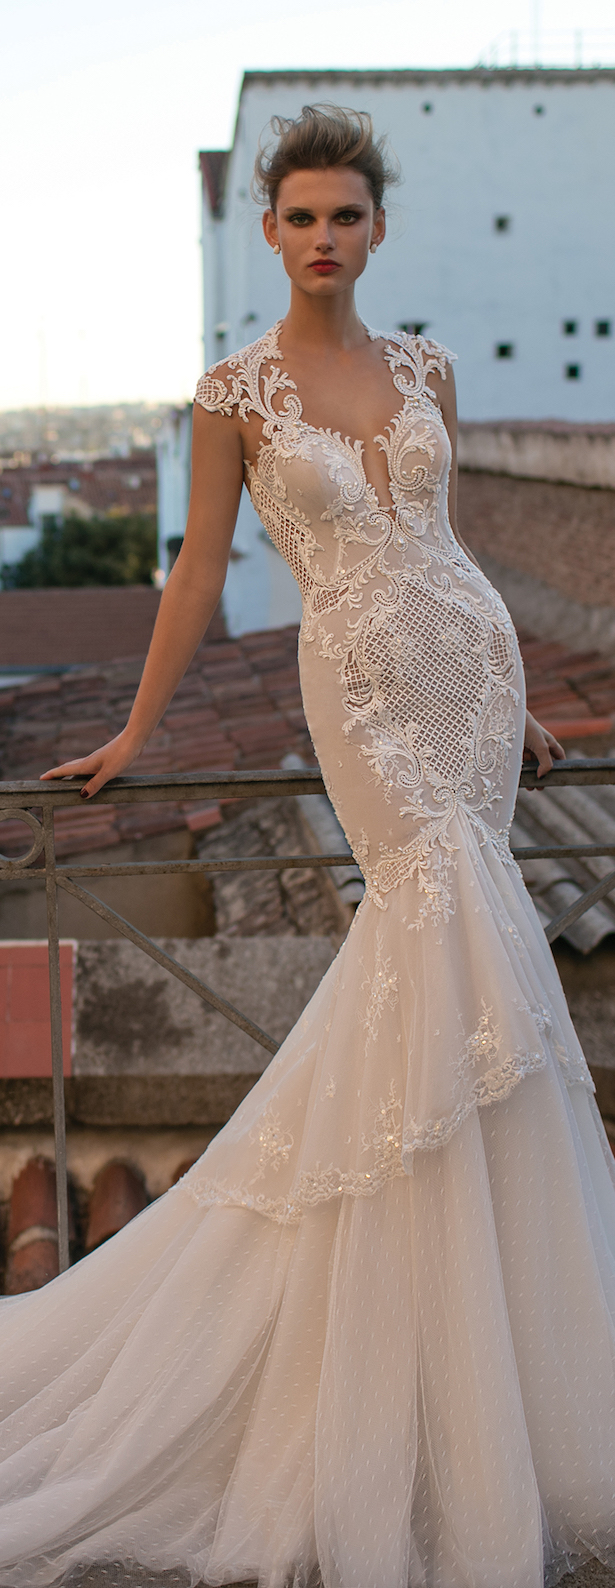 Berta bridal spring 2016 collection part 2 belle the for Berta wedding dress collection